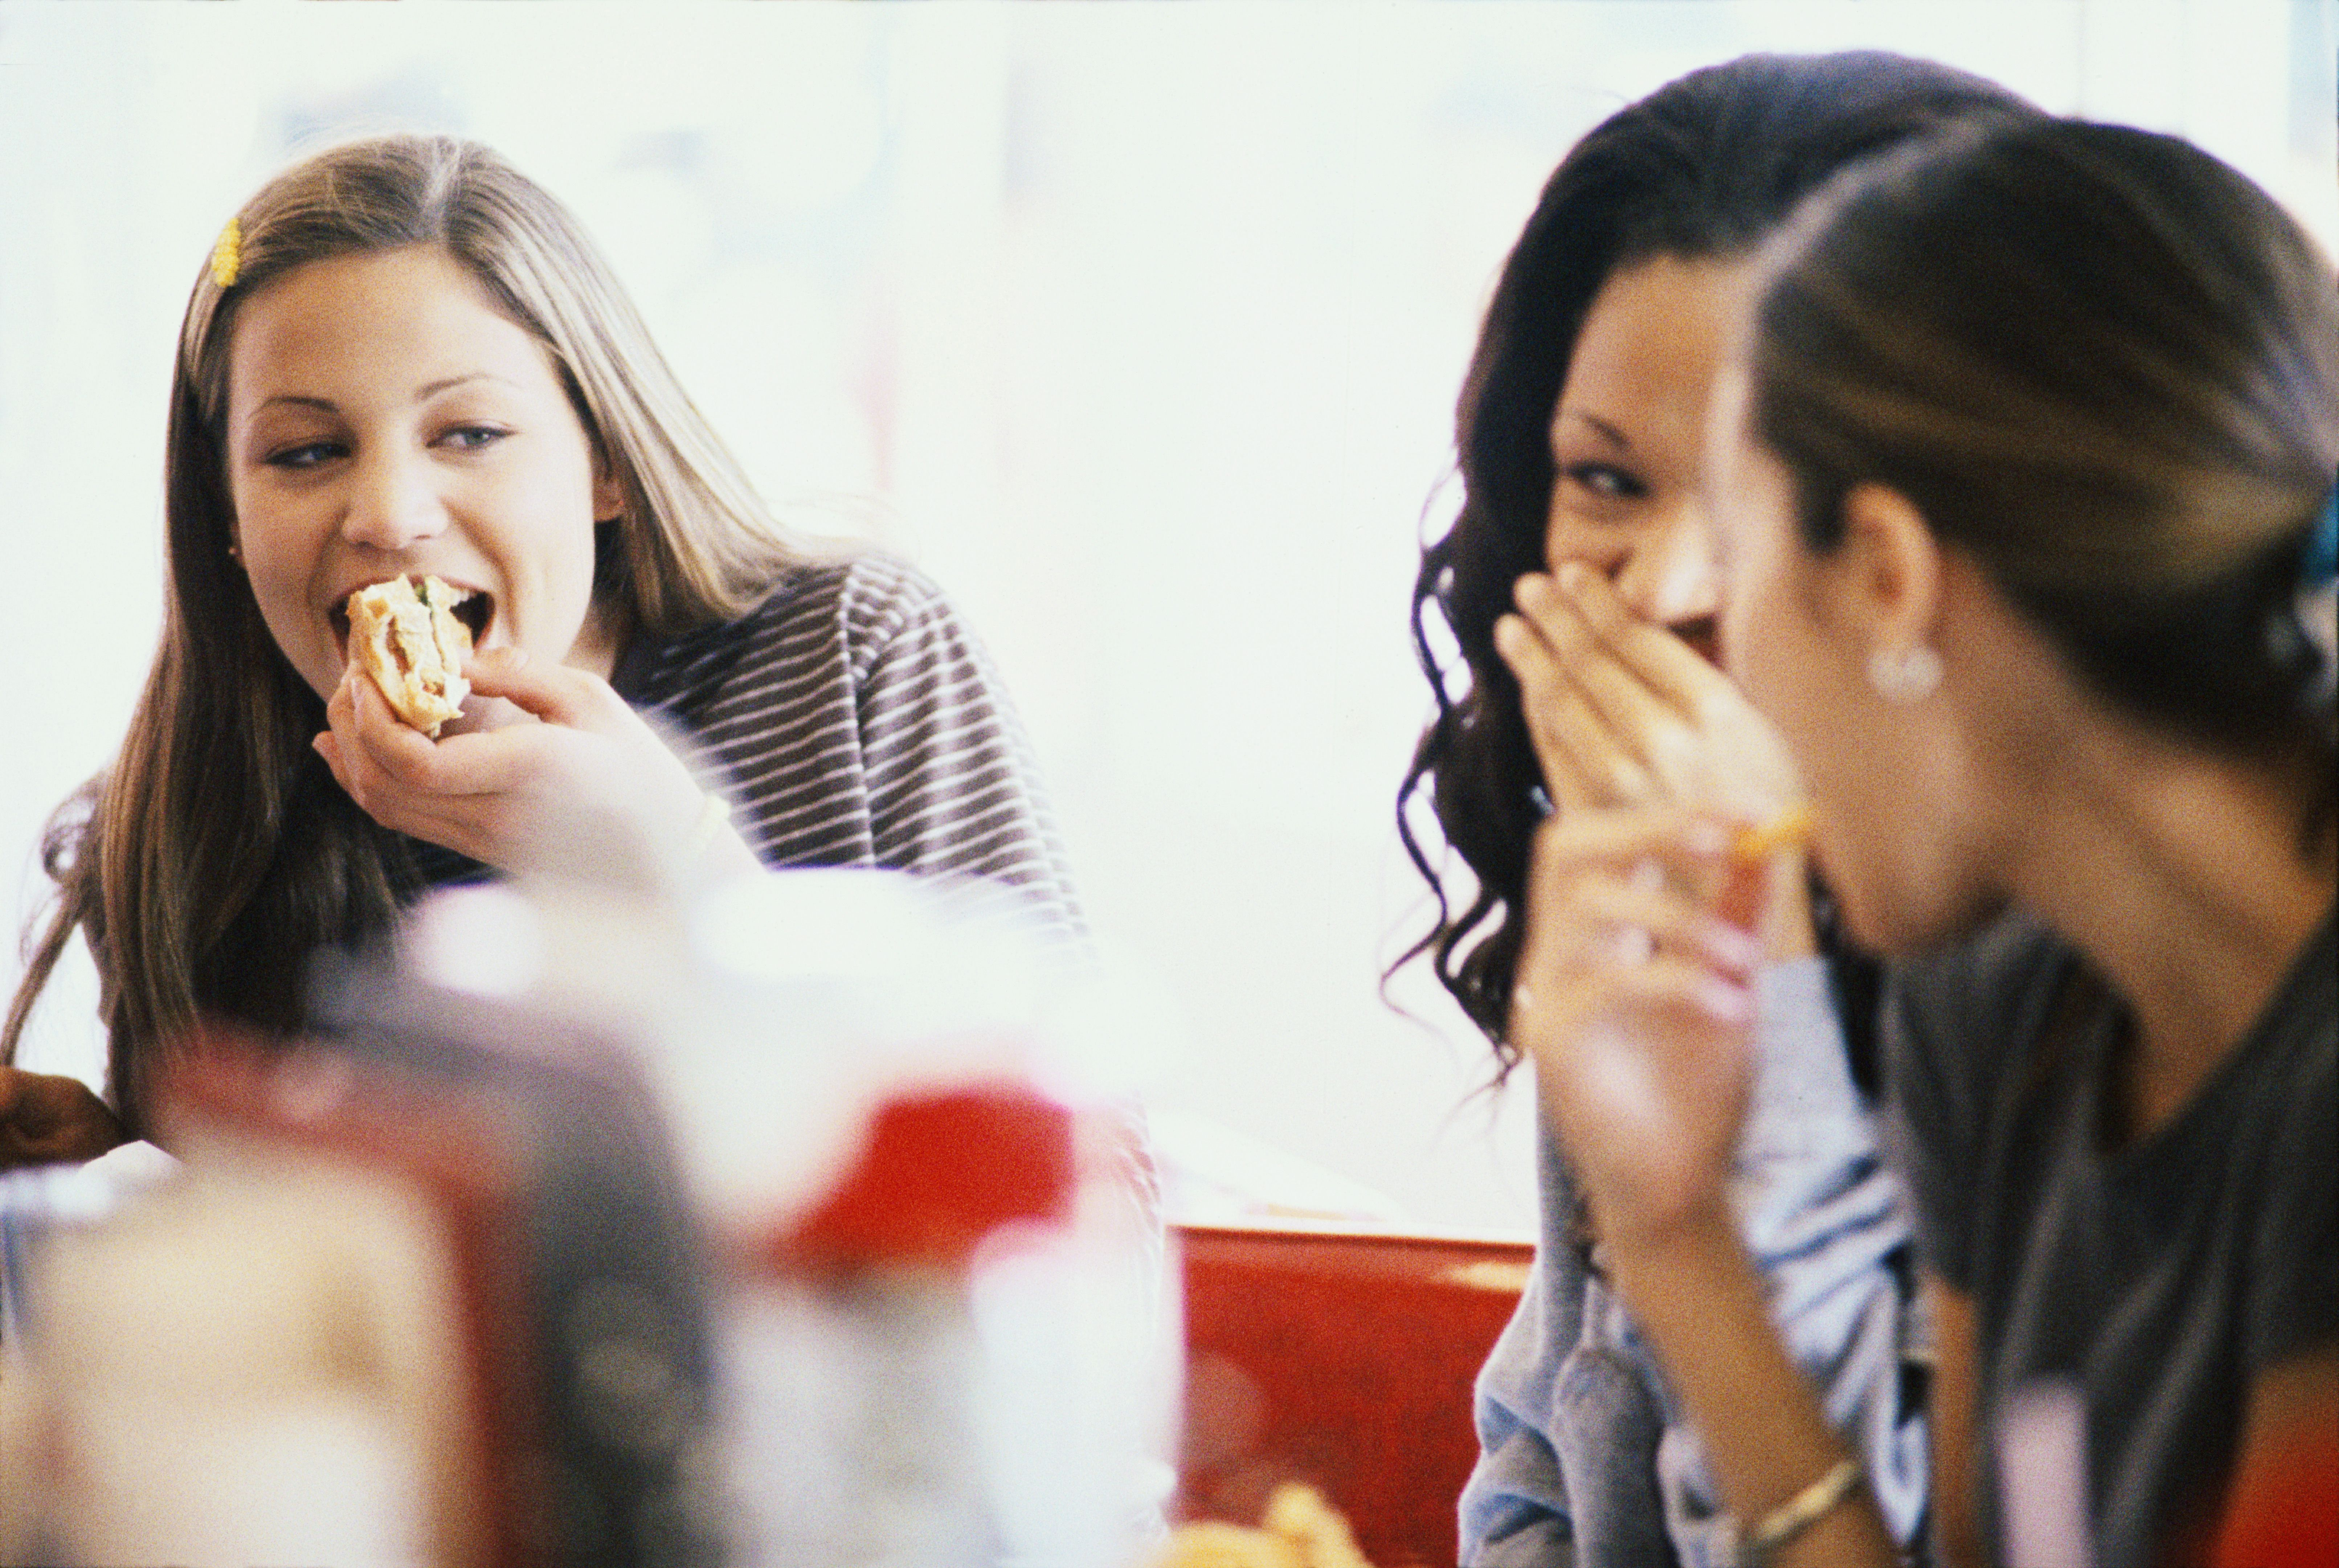 Three young women eating at a cafe